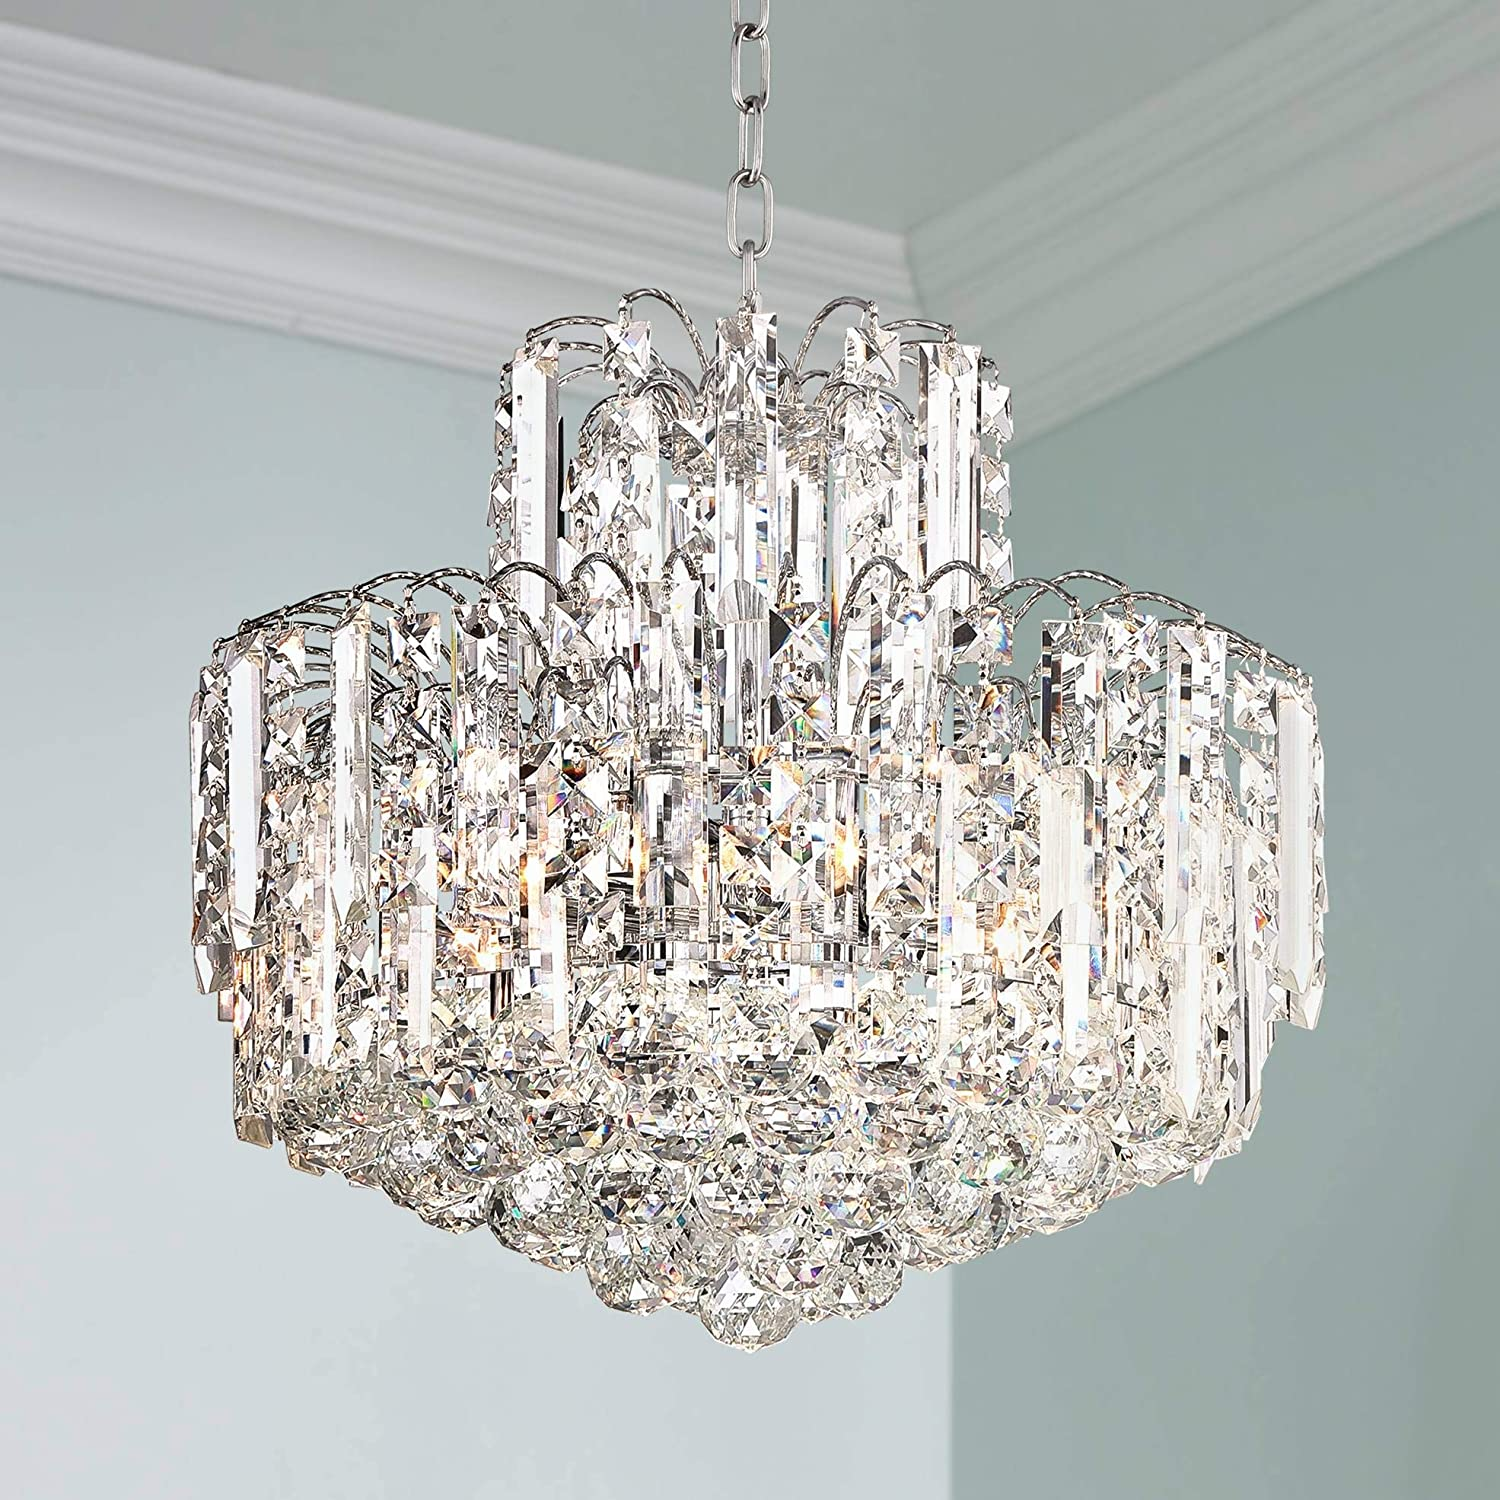 Leya 19 Wide Chrome and Crystal 6-Light Chandelier – Vienna Full Spectrum